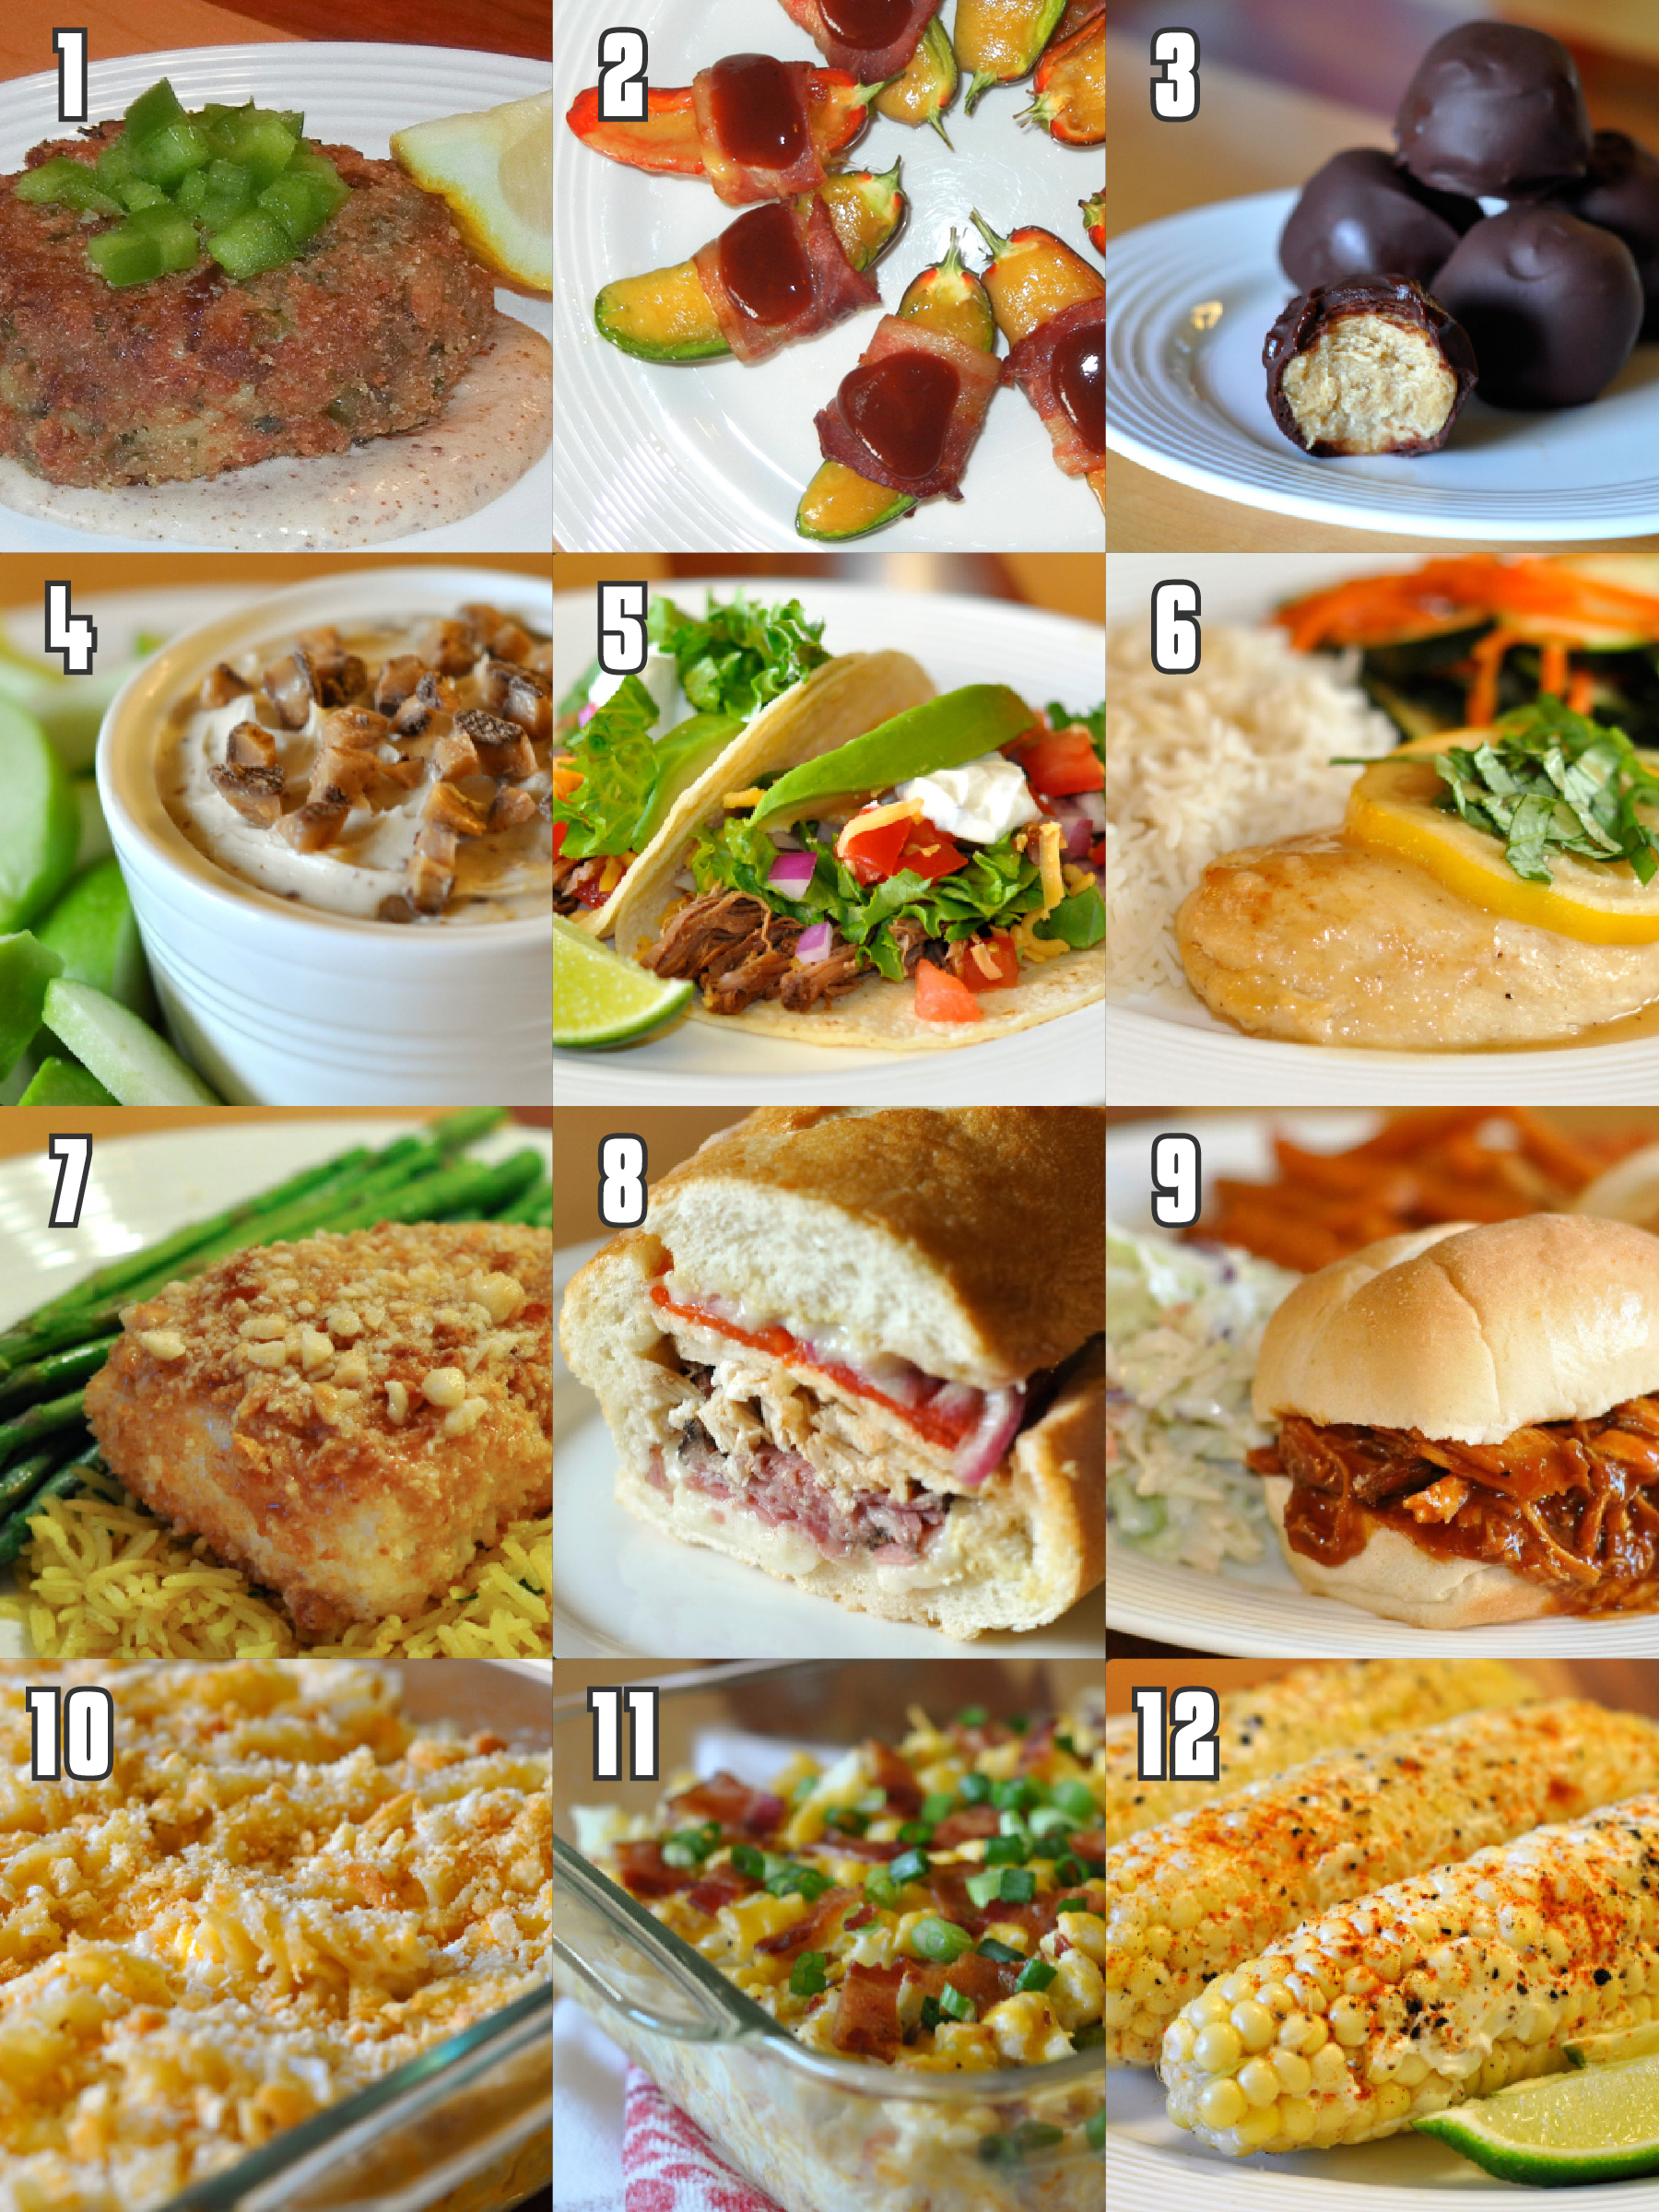 Fathers day meal ideas my hubbys top 12 picks hubbys top 12 picks forumfinder Images